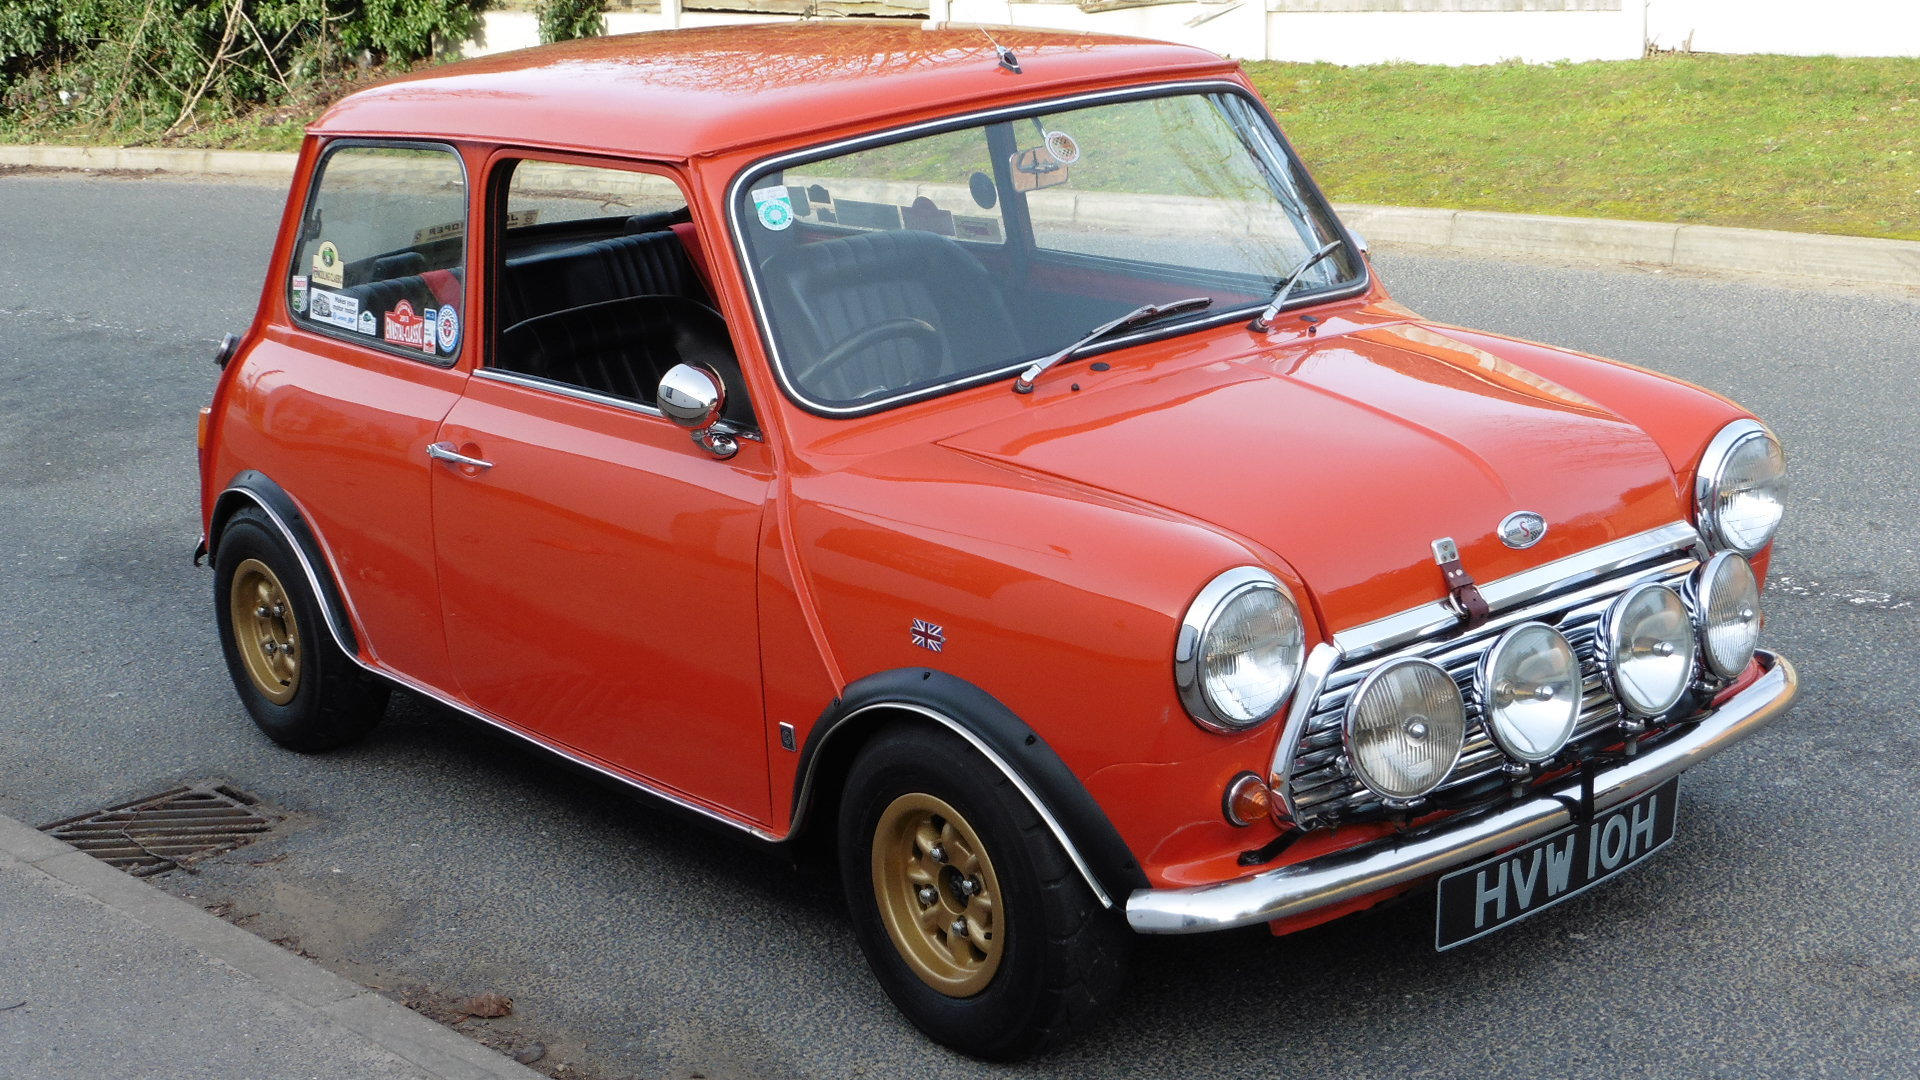 1970 Vortz Racing Morris Mini Cooper S MK3 Super Rare Exceptional For Sale (picture 3 of 6)